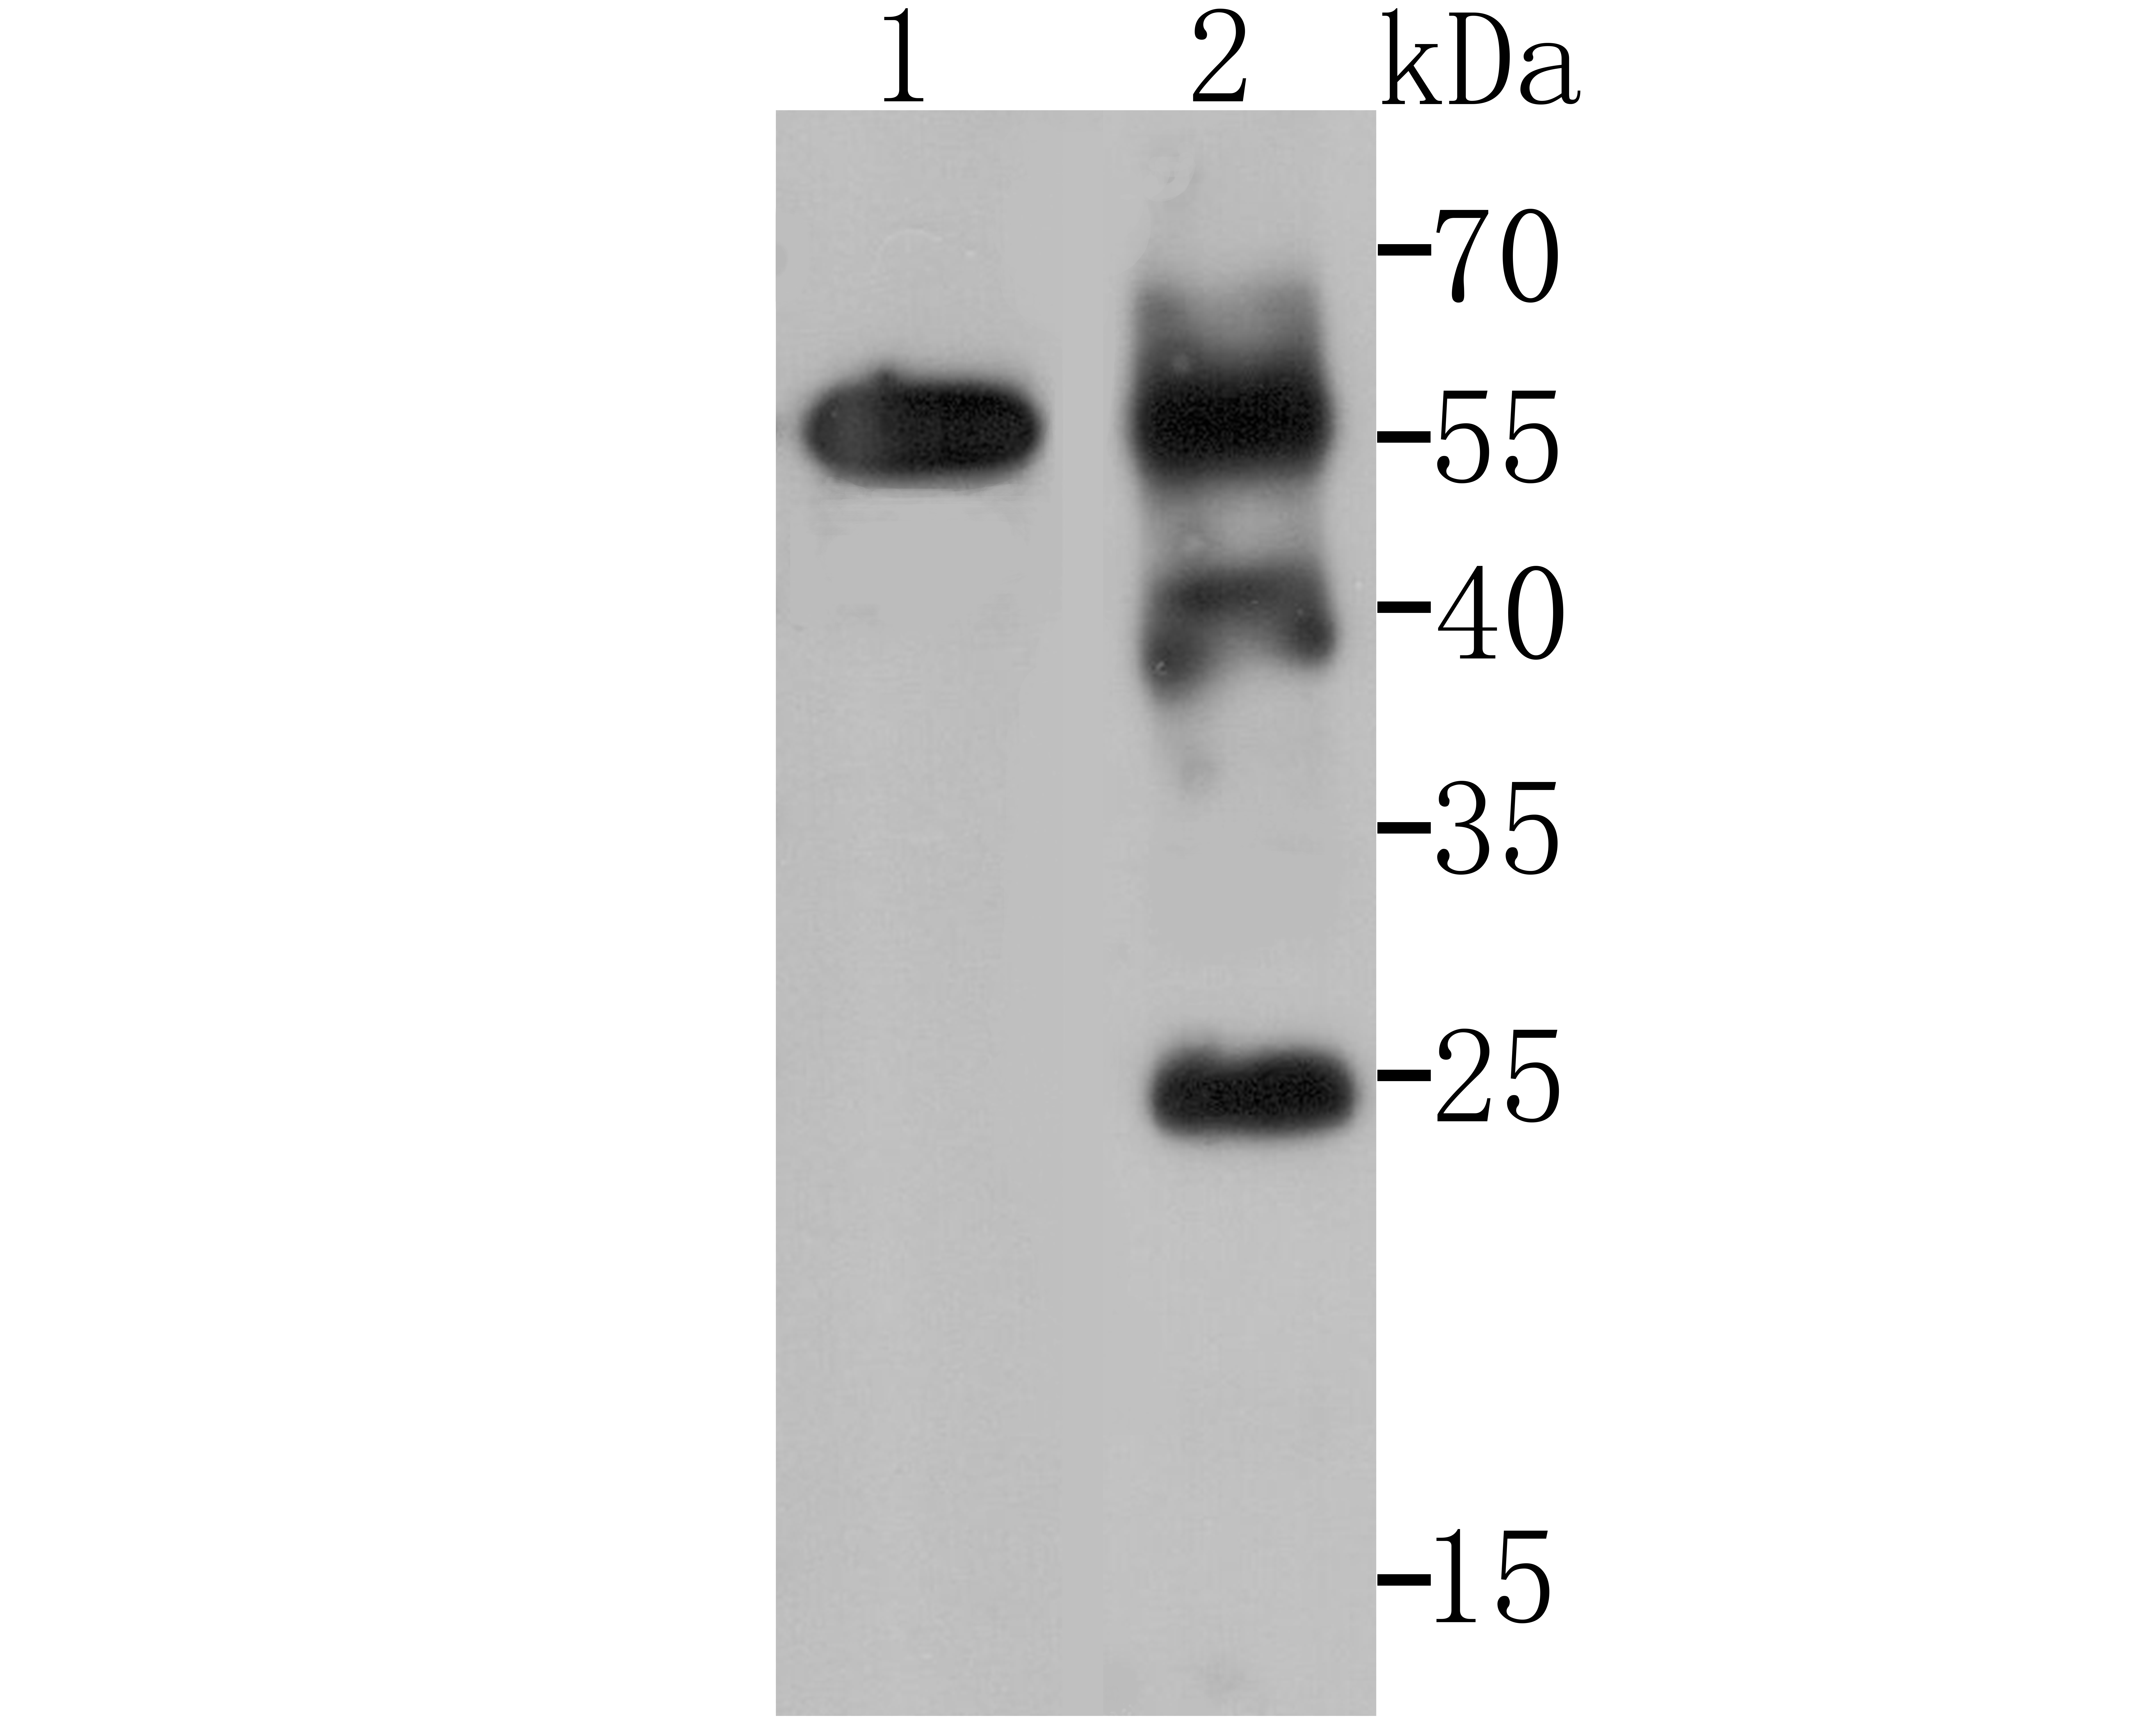 Western blot analysis of B7-H4(VTCN1) on SKBR3 cell and human colon tissue lysates using anti-B7-H4(VTCN1) antibody at 1/500 dilution.